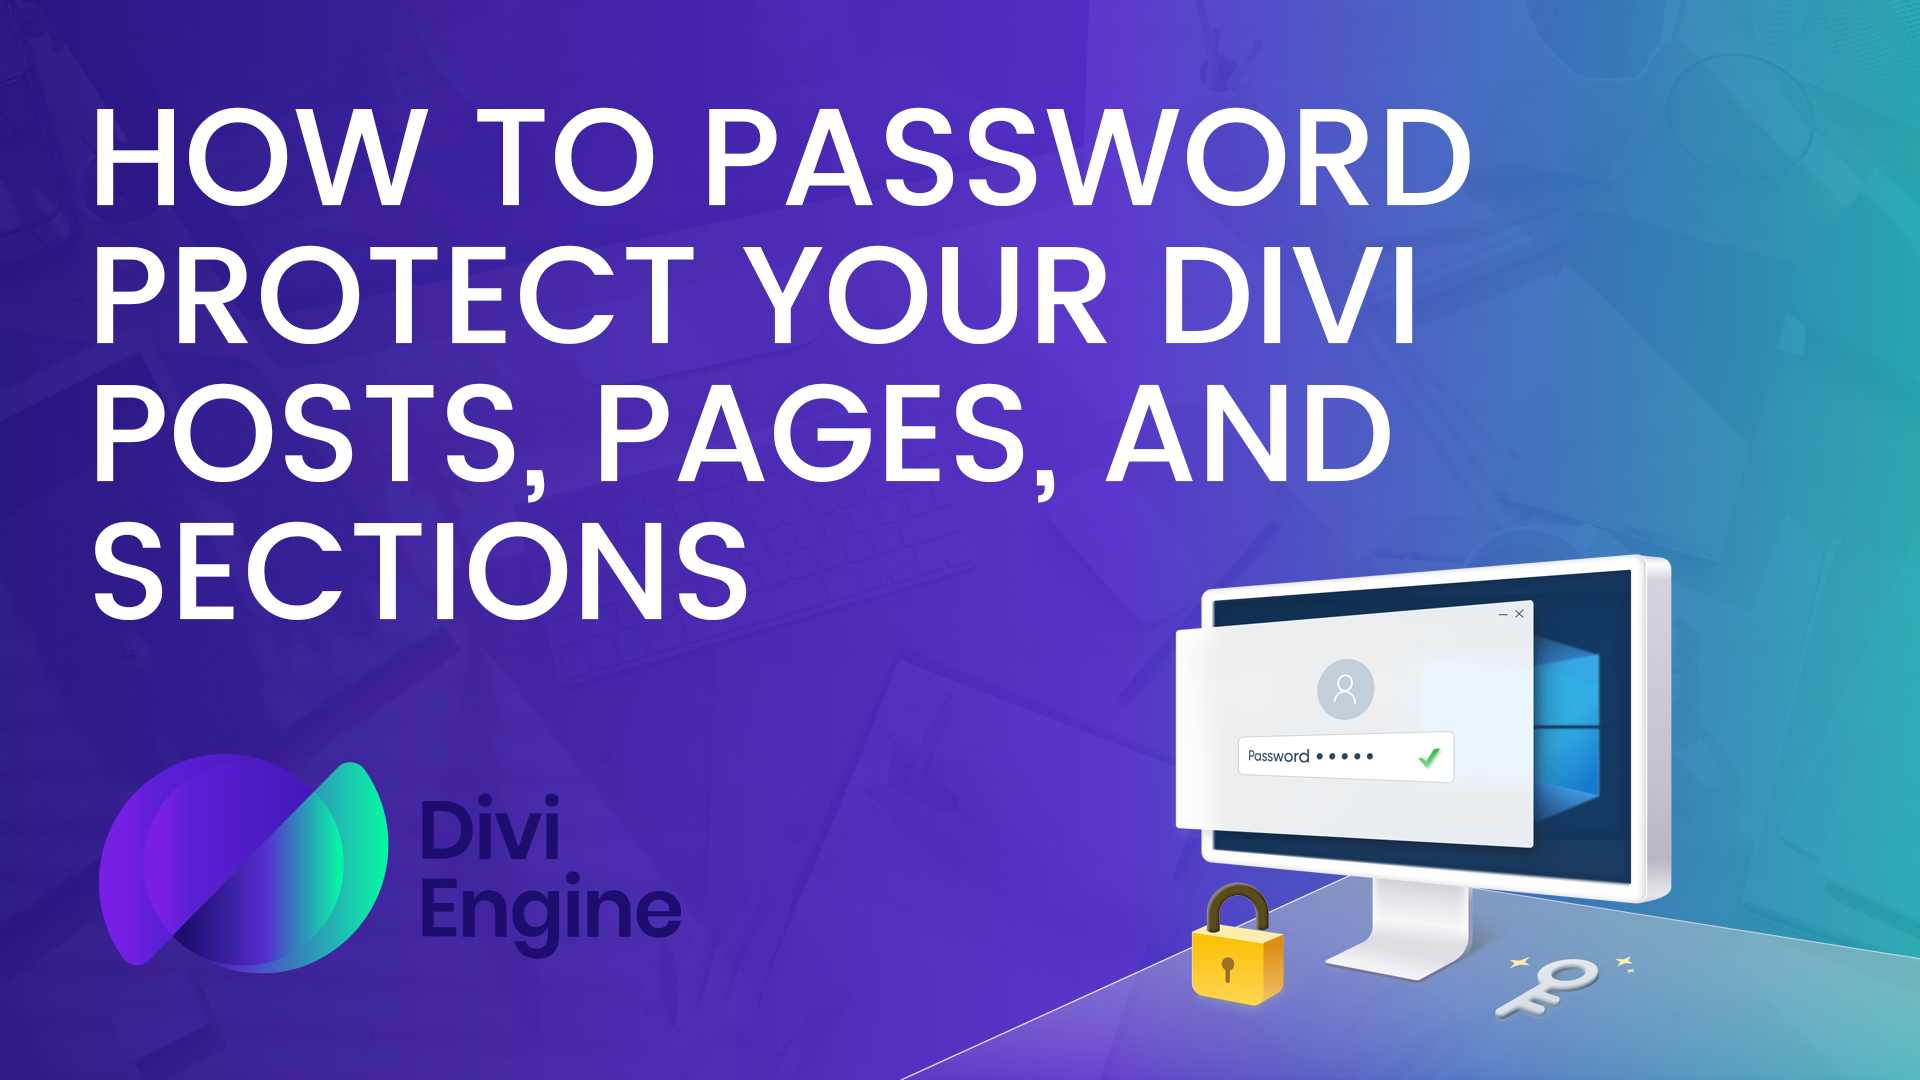 How to password protect your Divi Posts Pages and Sections